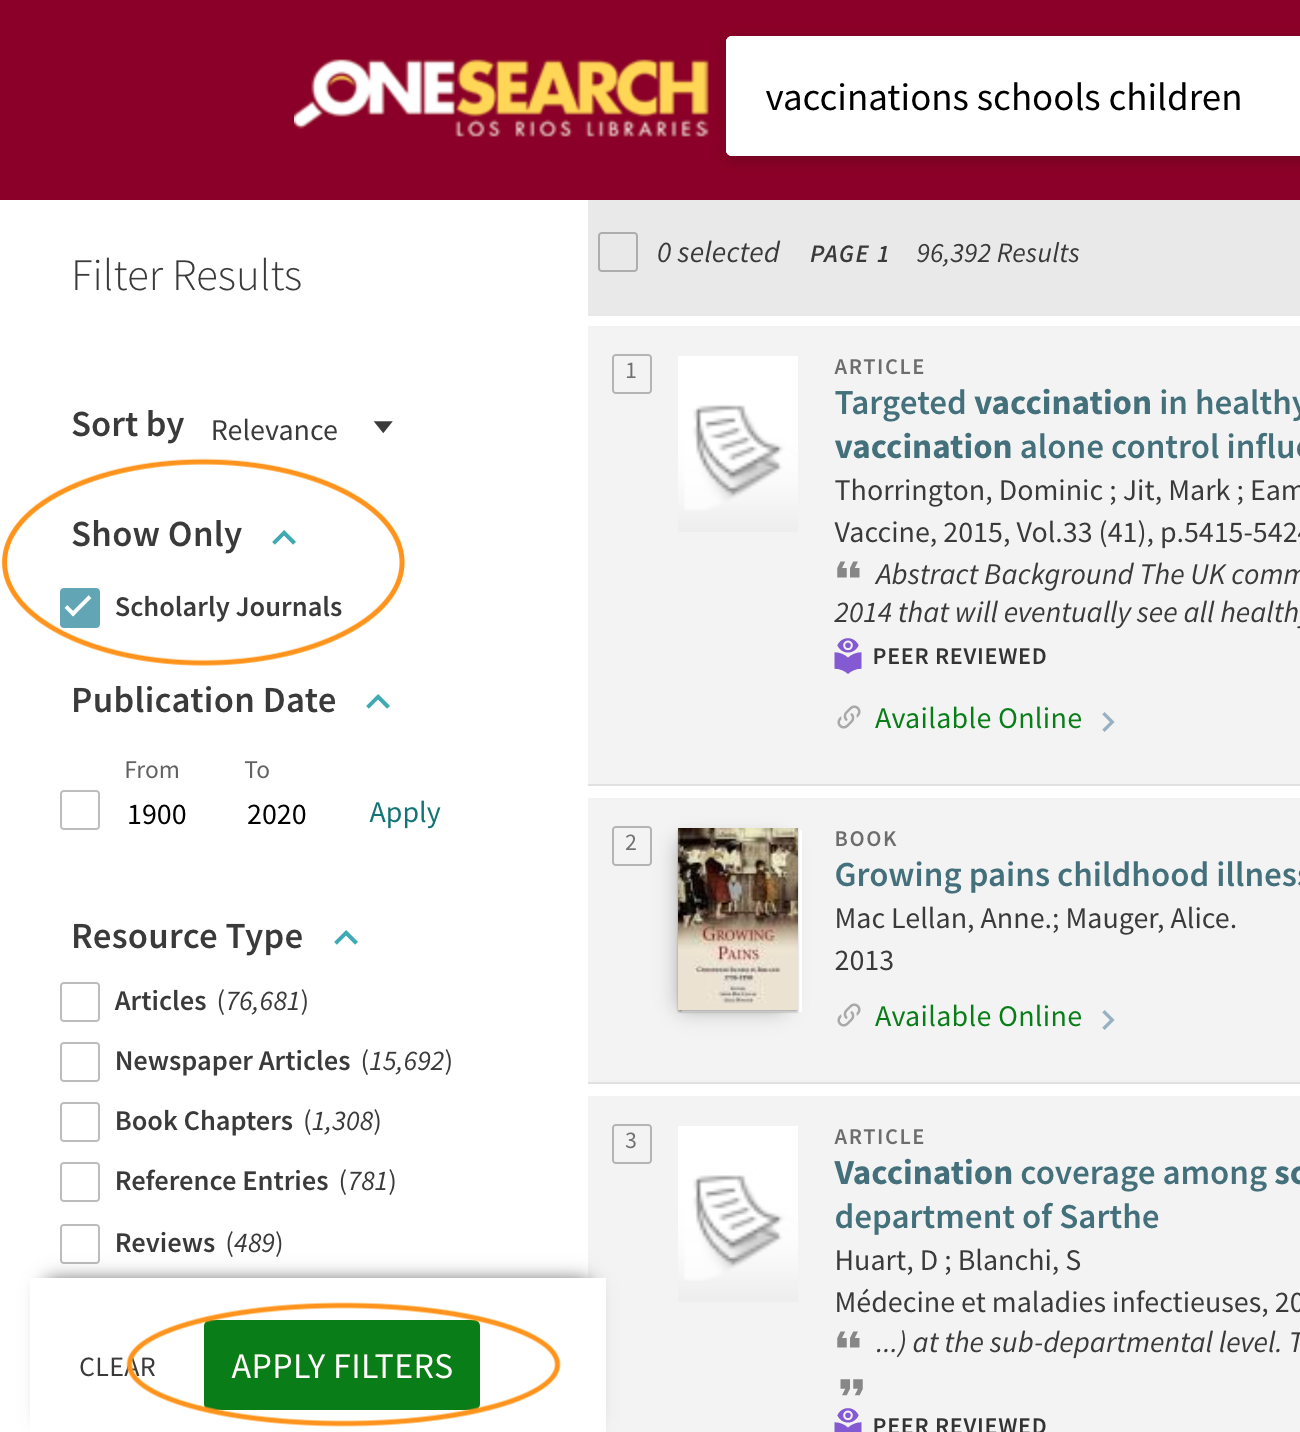 Select Scholarly Journals. Then click on Apply Filters.